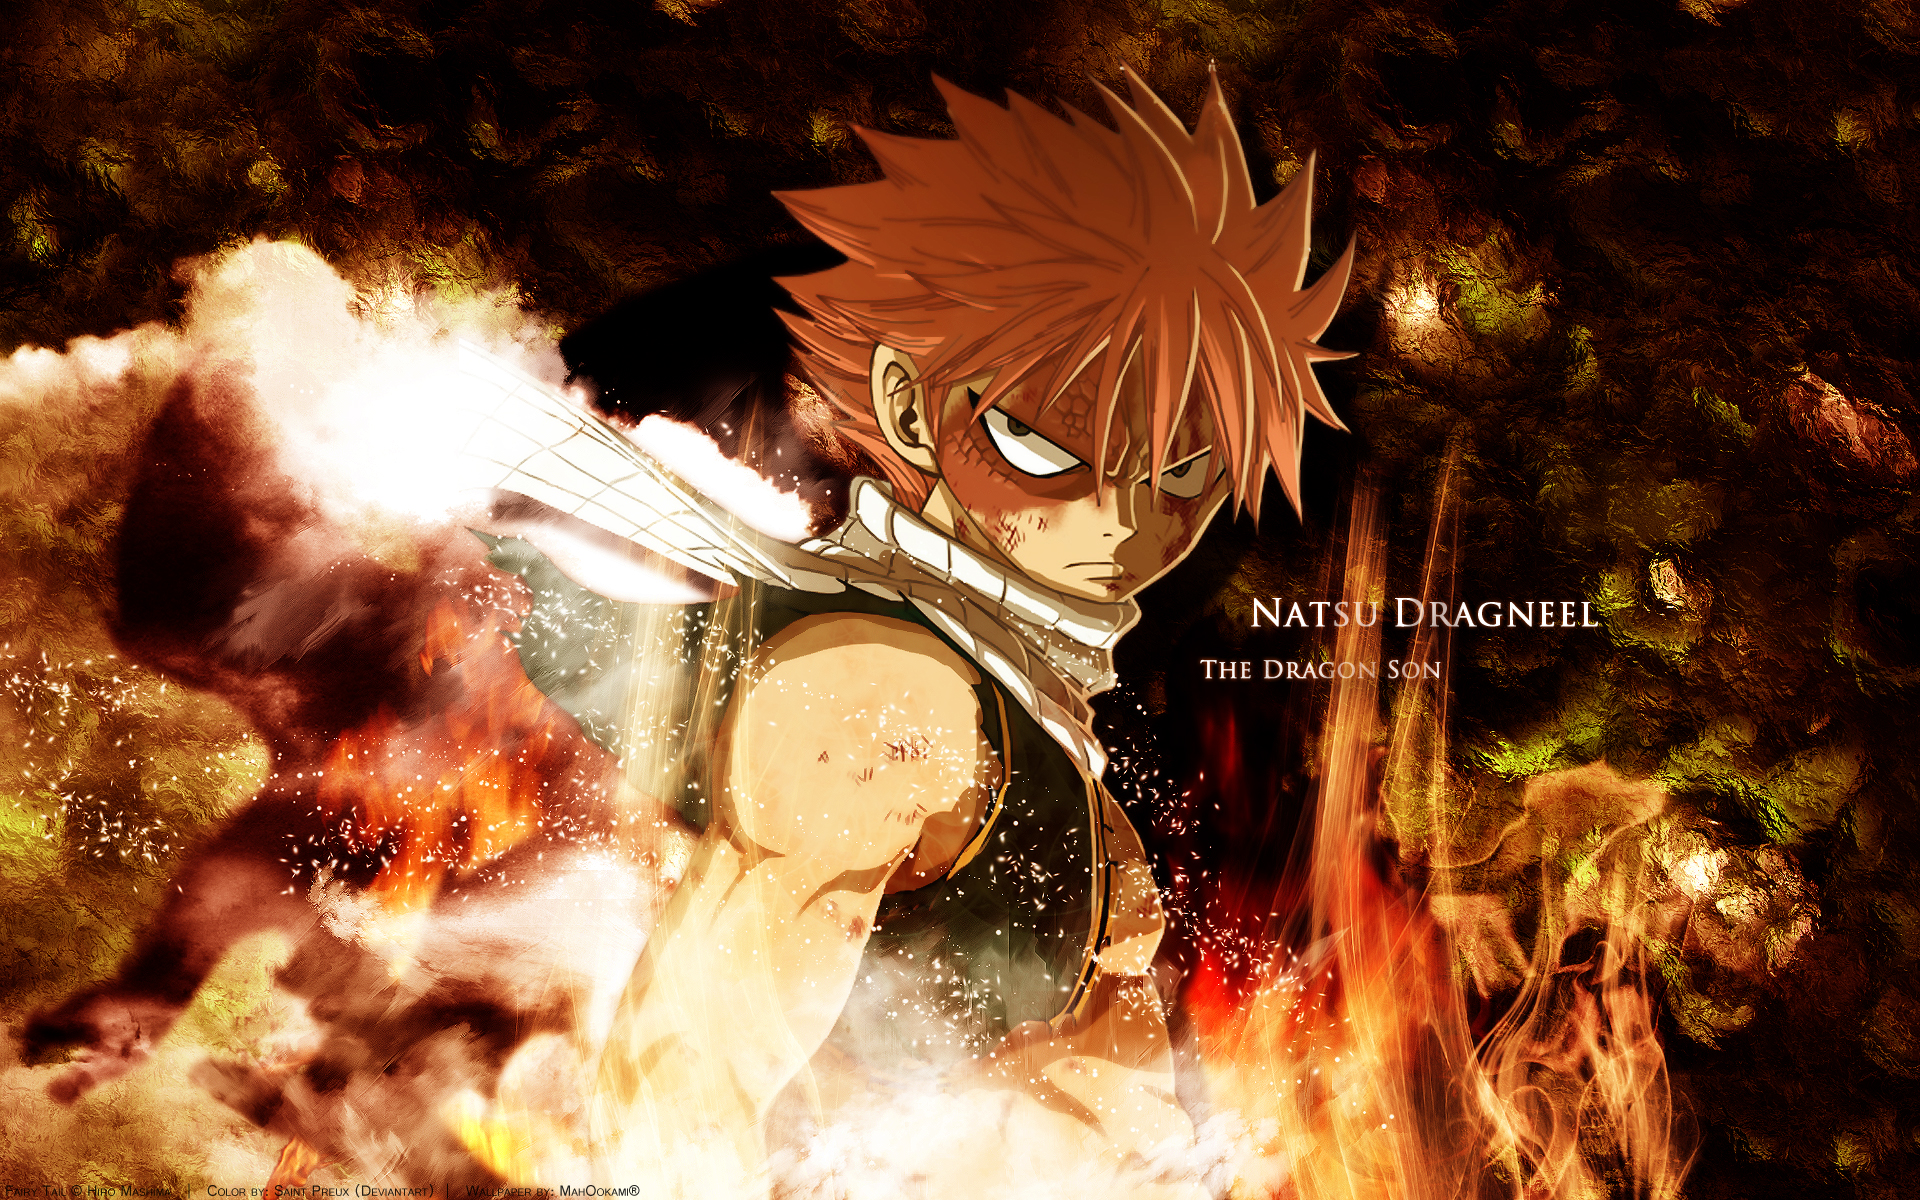 Fairy Tail Computer Wallpapers Desktop Backgrounds 1920x1200 ID 1920x1200